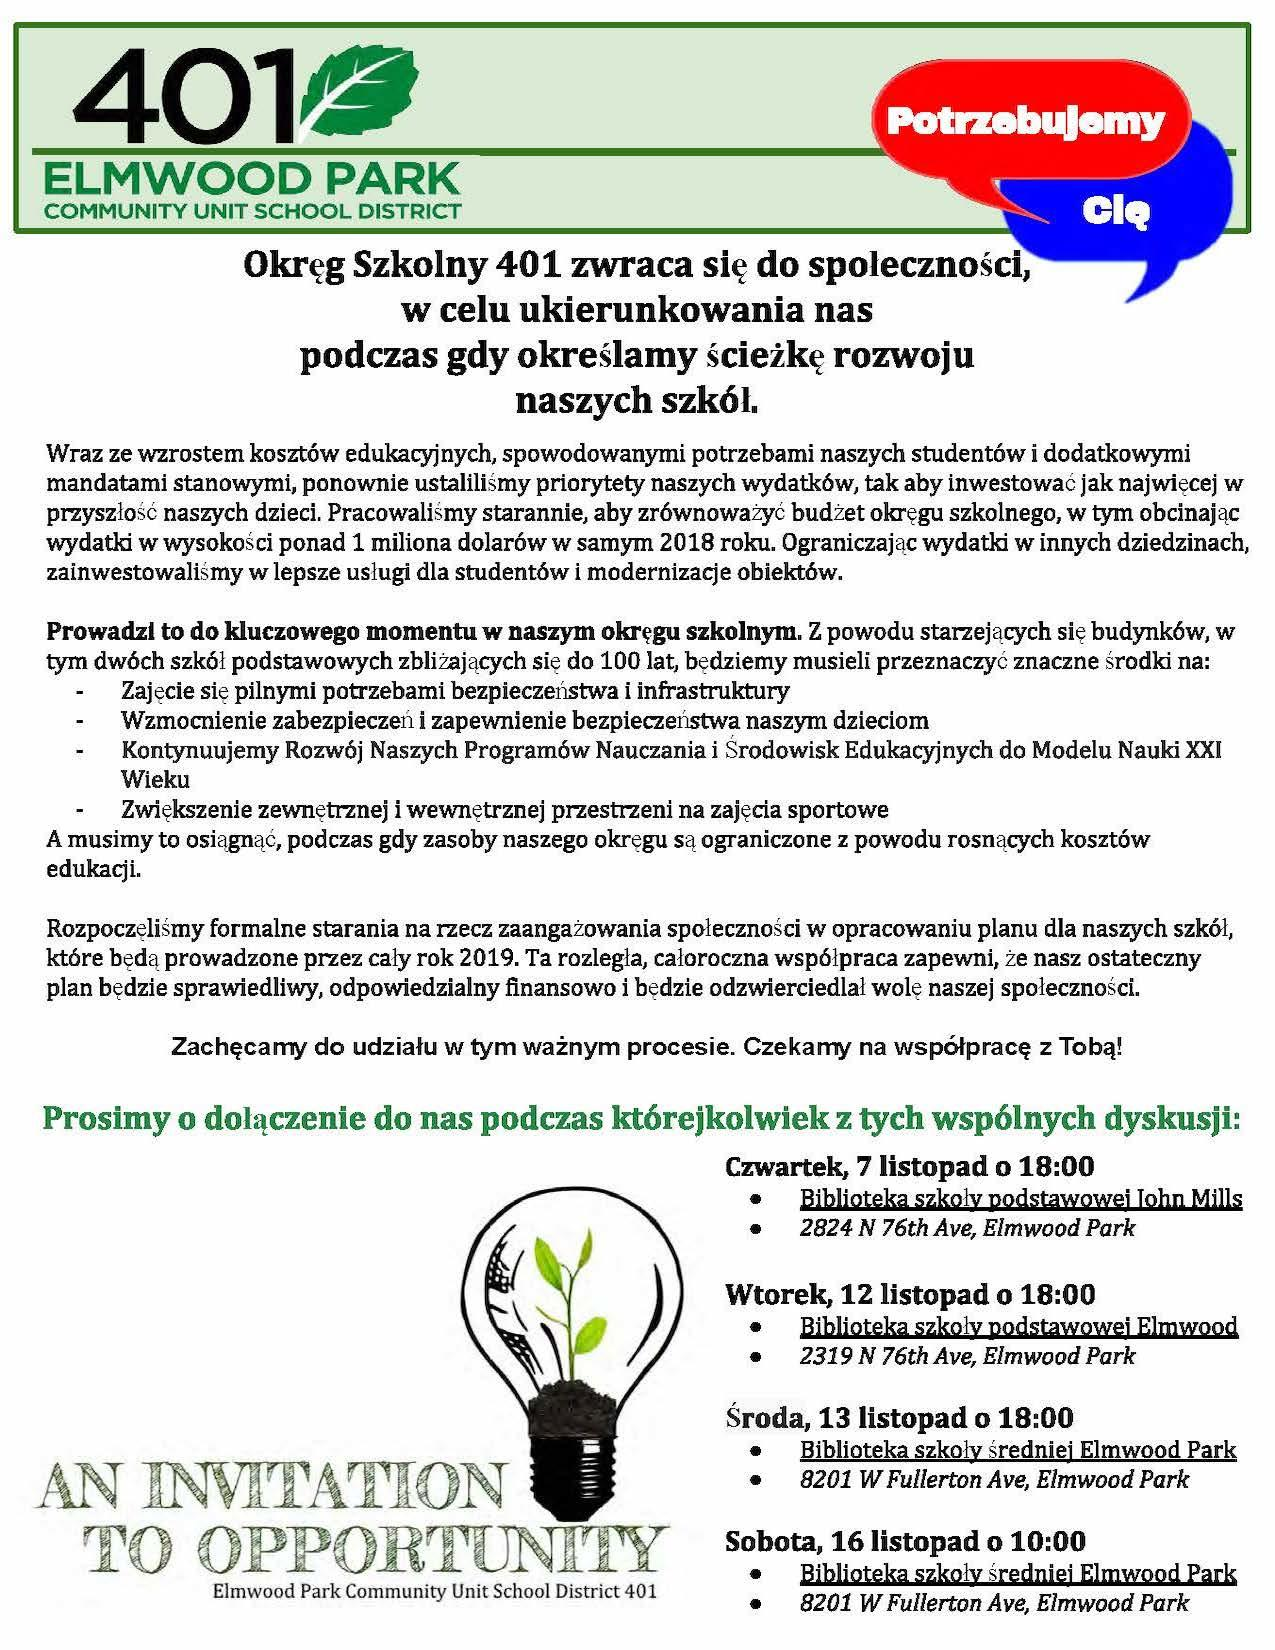 Community engagement flyer in Polish